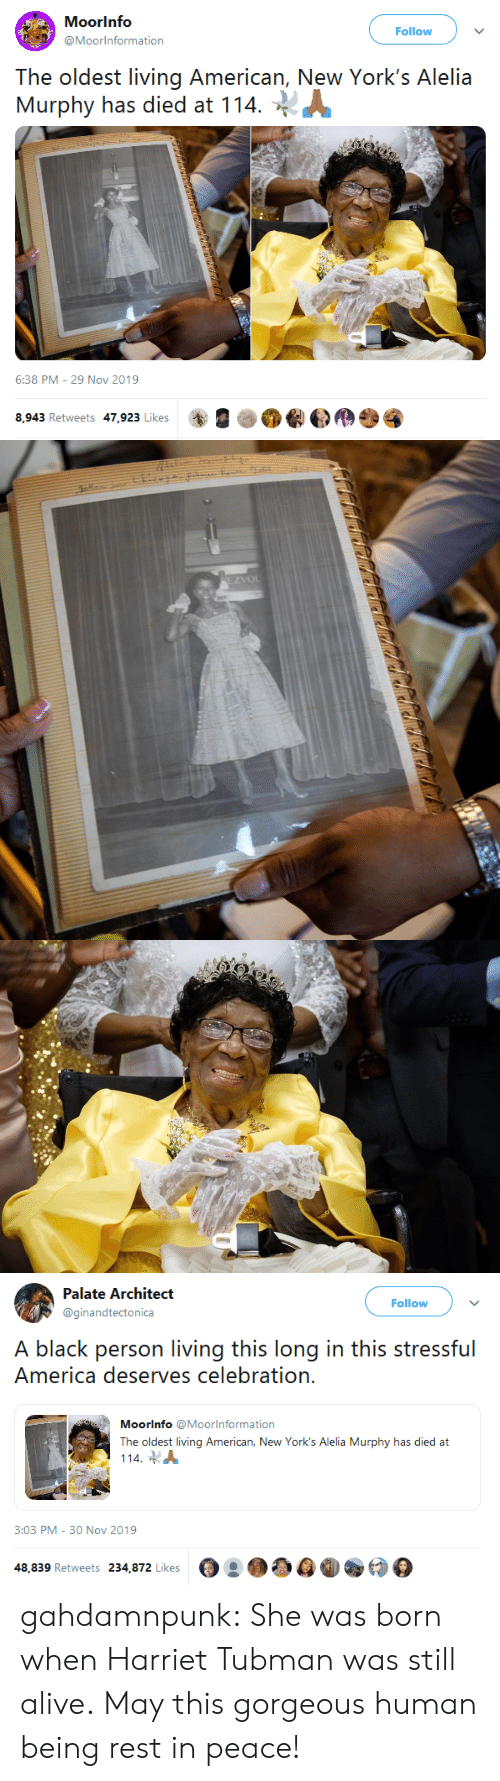 The Oldest: Moorinfo  Follow  @Moorinformation  The oldest living American, New York's Alelia  Murphy has died at 114  6:38 PM - 29 Nov 2019  8,943 Retweets 47,923 Likes   EZVOL   Palate Architect  Follow  @ginandtectonica  A black person living this long in this stressful  America deserves celebration.  Moorinfo @Moorlnformation  The oldest living American, New York's Alelia Murphy has died at  114  3:03 PM - 30 Nov 2019  48,839 Retweets 234,872 Likes gahdamnpunk: She was born when Harriet Tubman was still alive. May this gorgeous human being rest in peace!